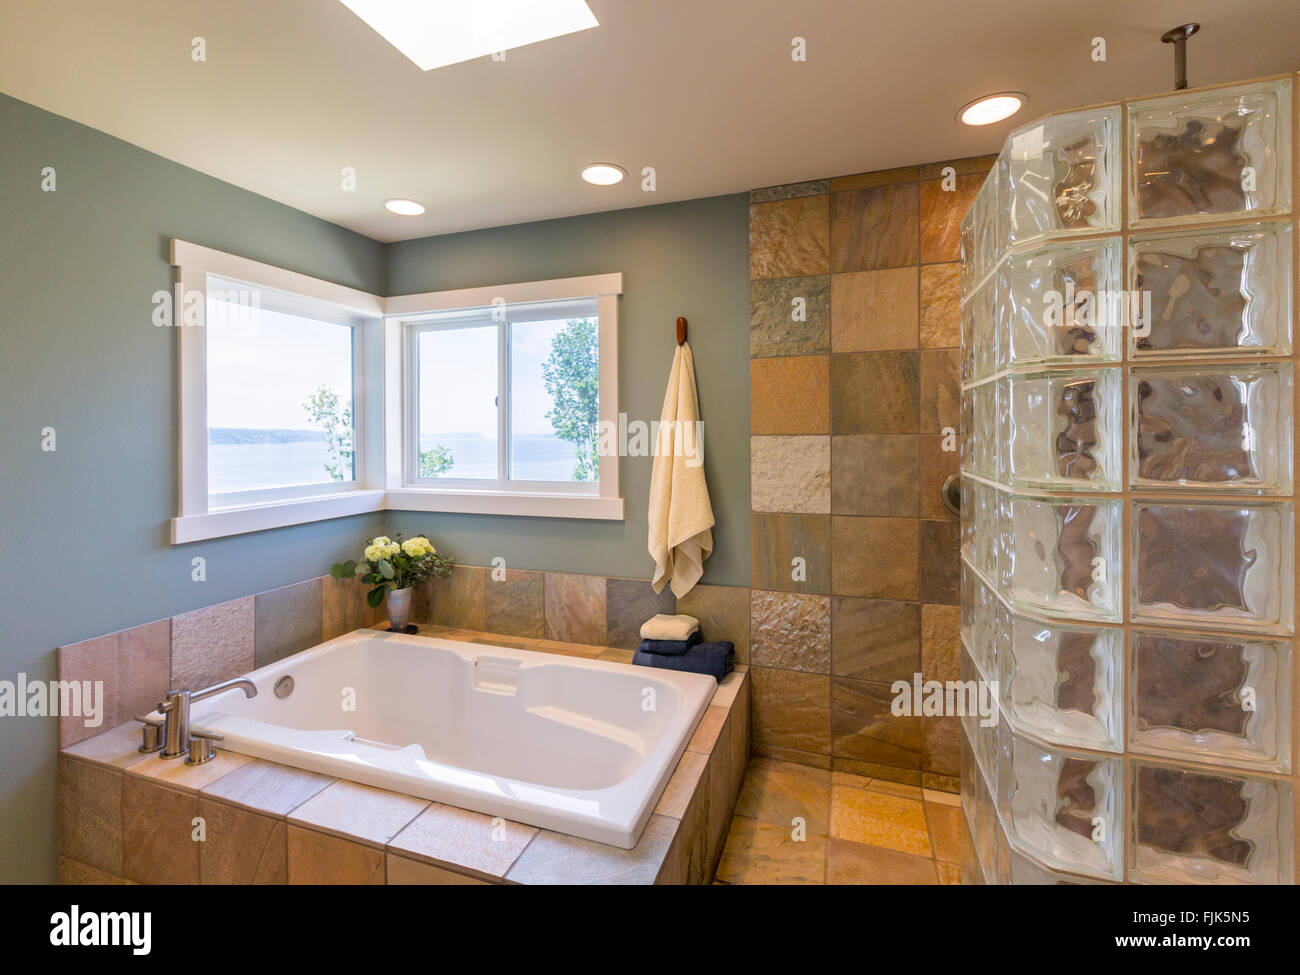 Contemporary Upscale Home Spa Bathroom Interior With Glass Tile